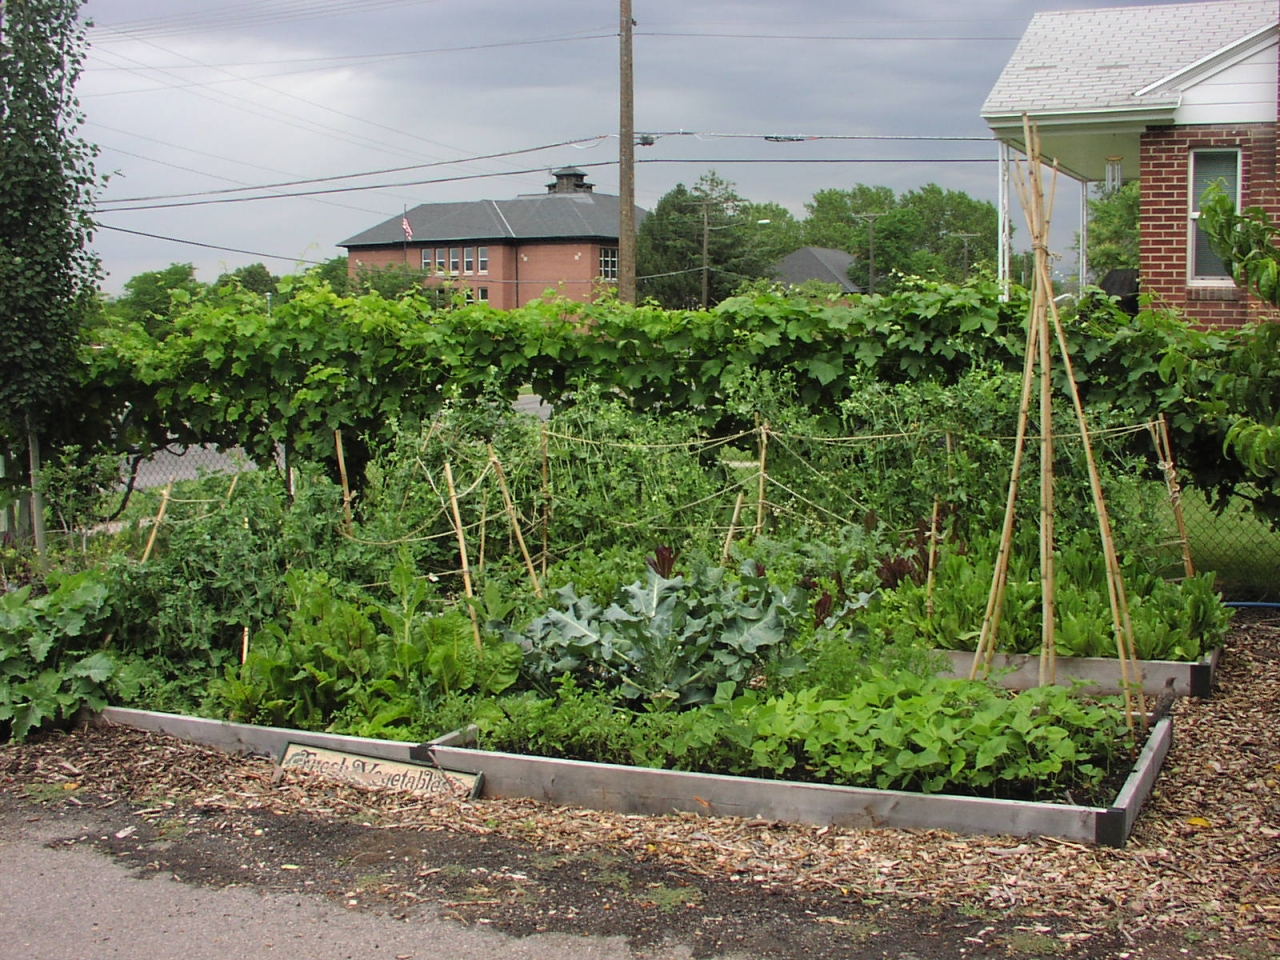 Raised Vegetable Beds With Grape Vines on Fence Behind